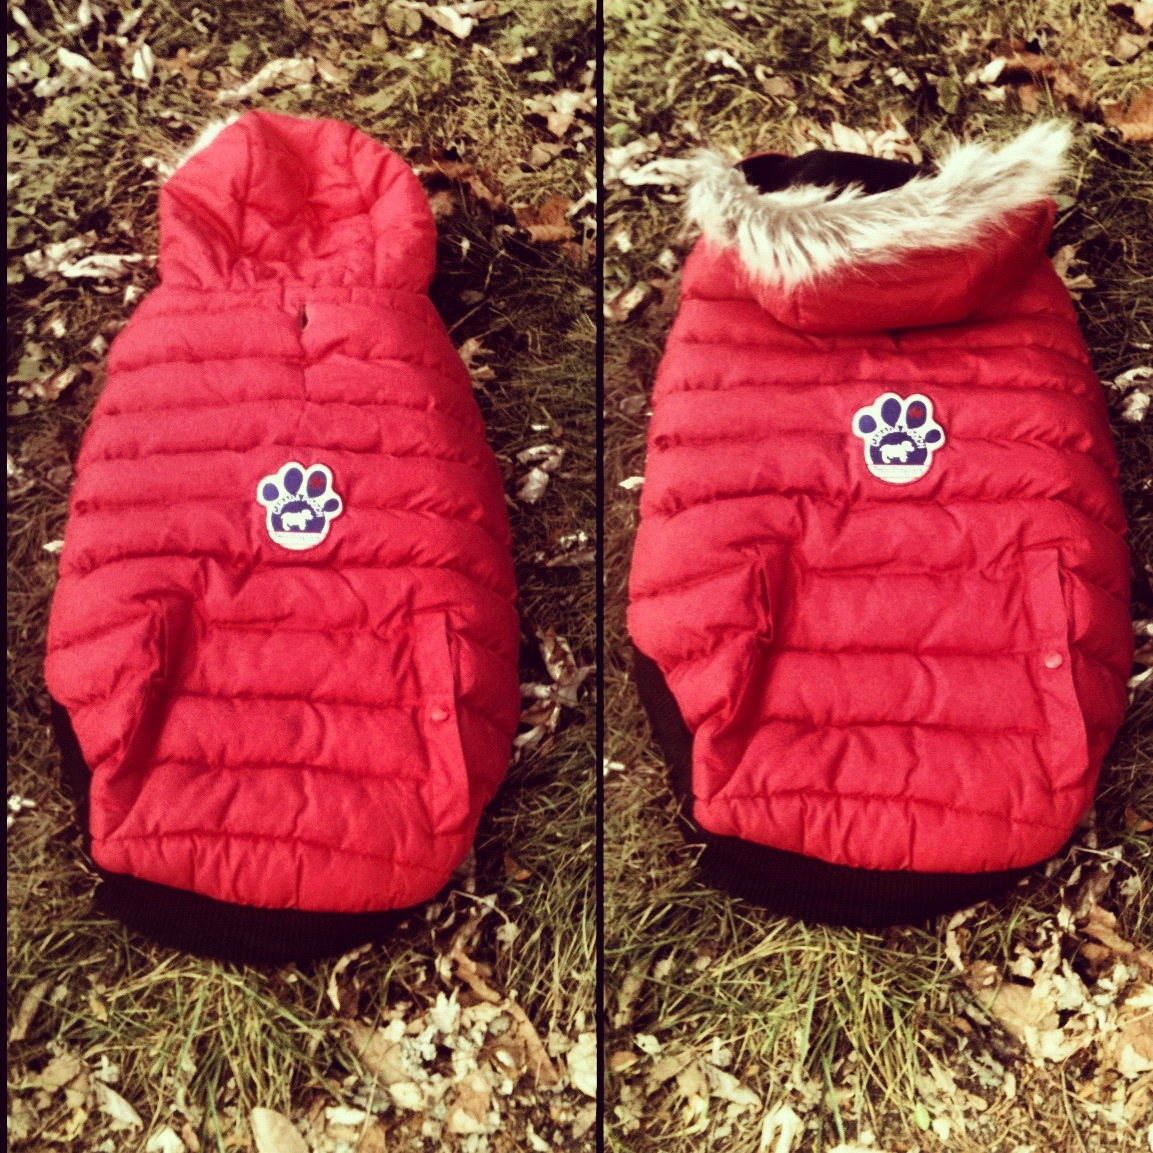 ... recognizing that once a dog starts moving he's gonna move in every which way. These jackets keep movement unrestricted, keeping your furry loves' stress ...